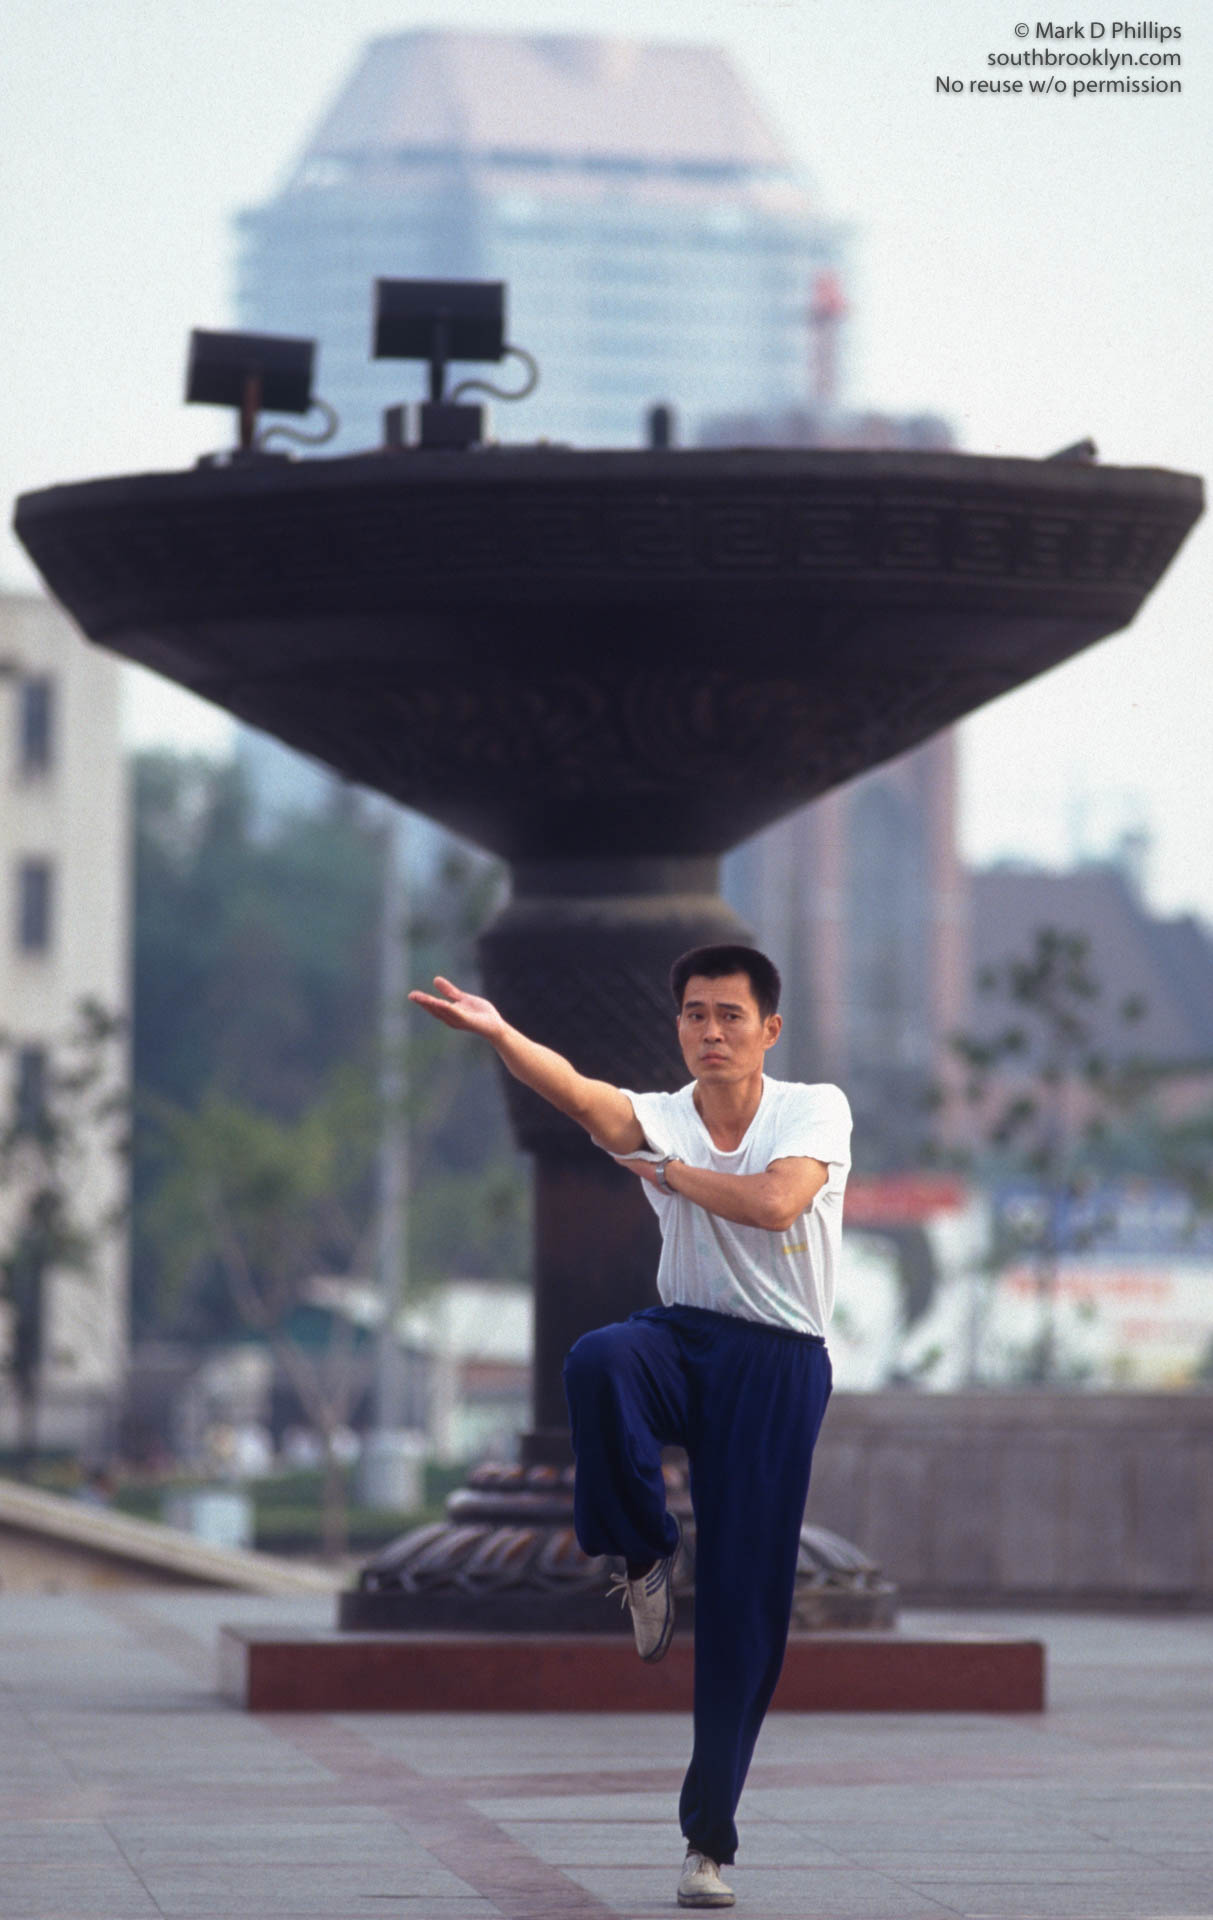 A Shanghai resident does Tai Che in a park in Shanghai, China, for the opening night of the Shanghai Tourism Festival on September 24, 1996.